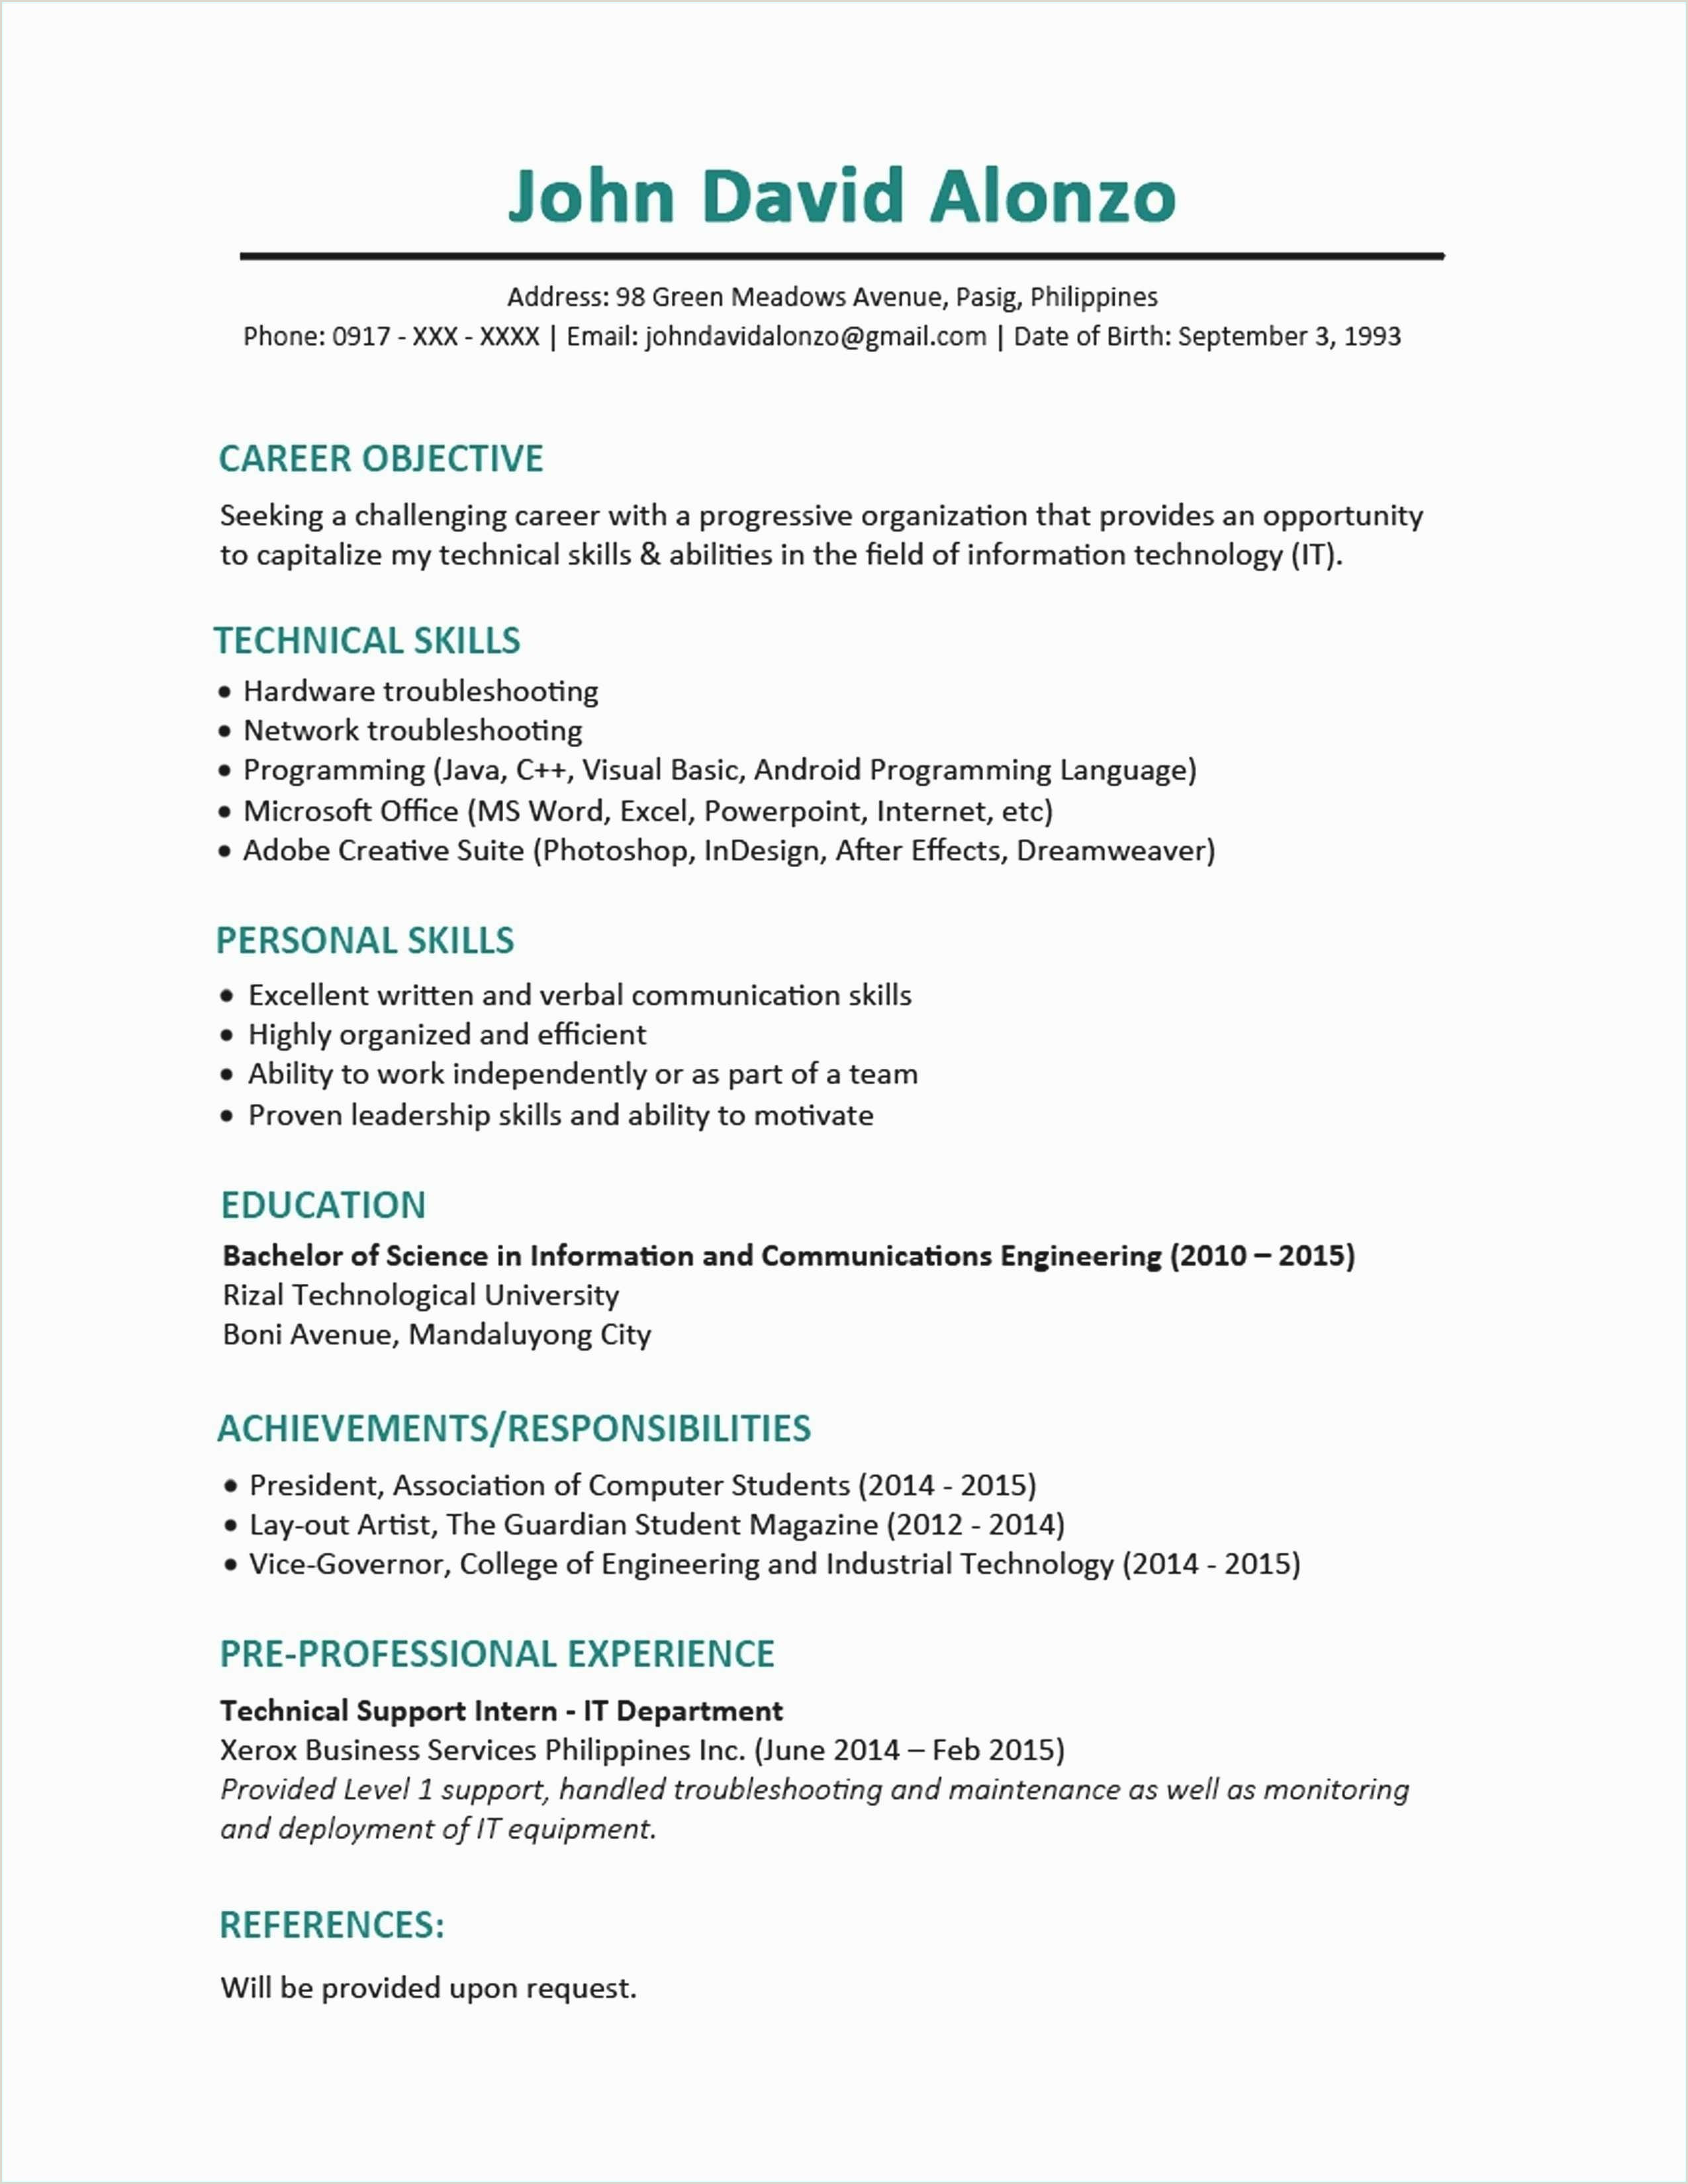 Resume Format For Job Engineering Collage Work Activity Great Chronological Resume Sample